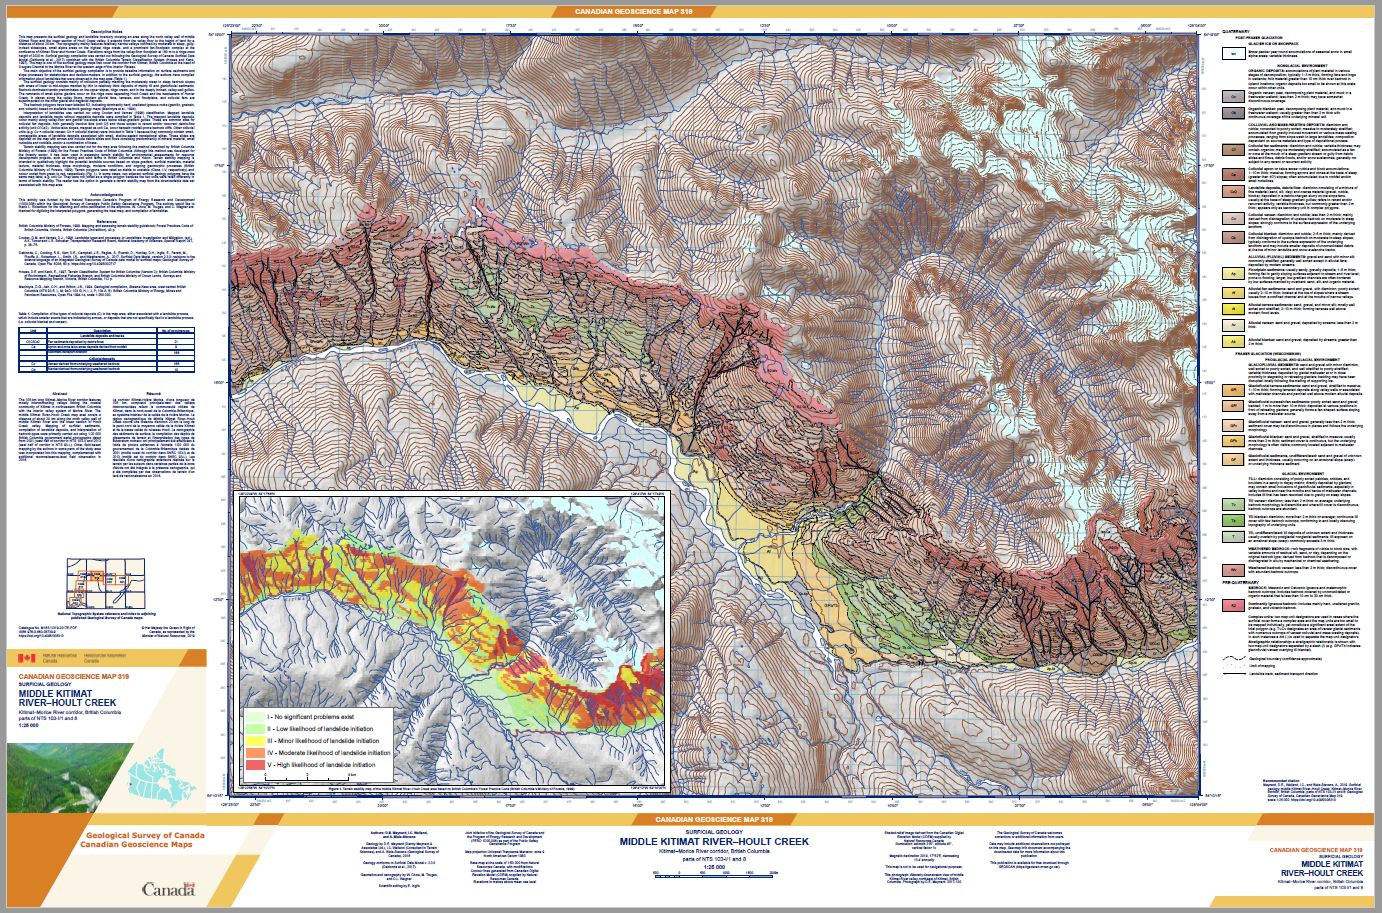 Surficial geology, middle Kitimat River-Hoult Creek, Kitimat-Morice River